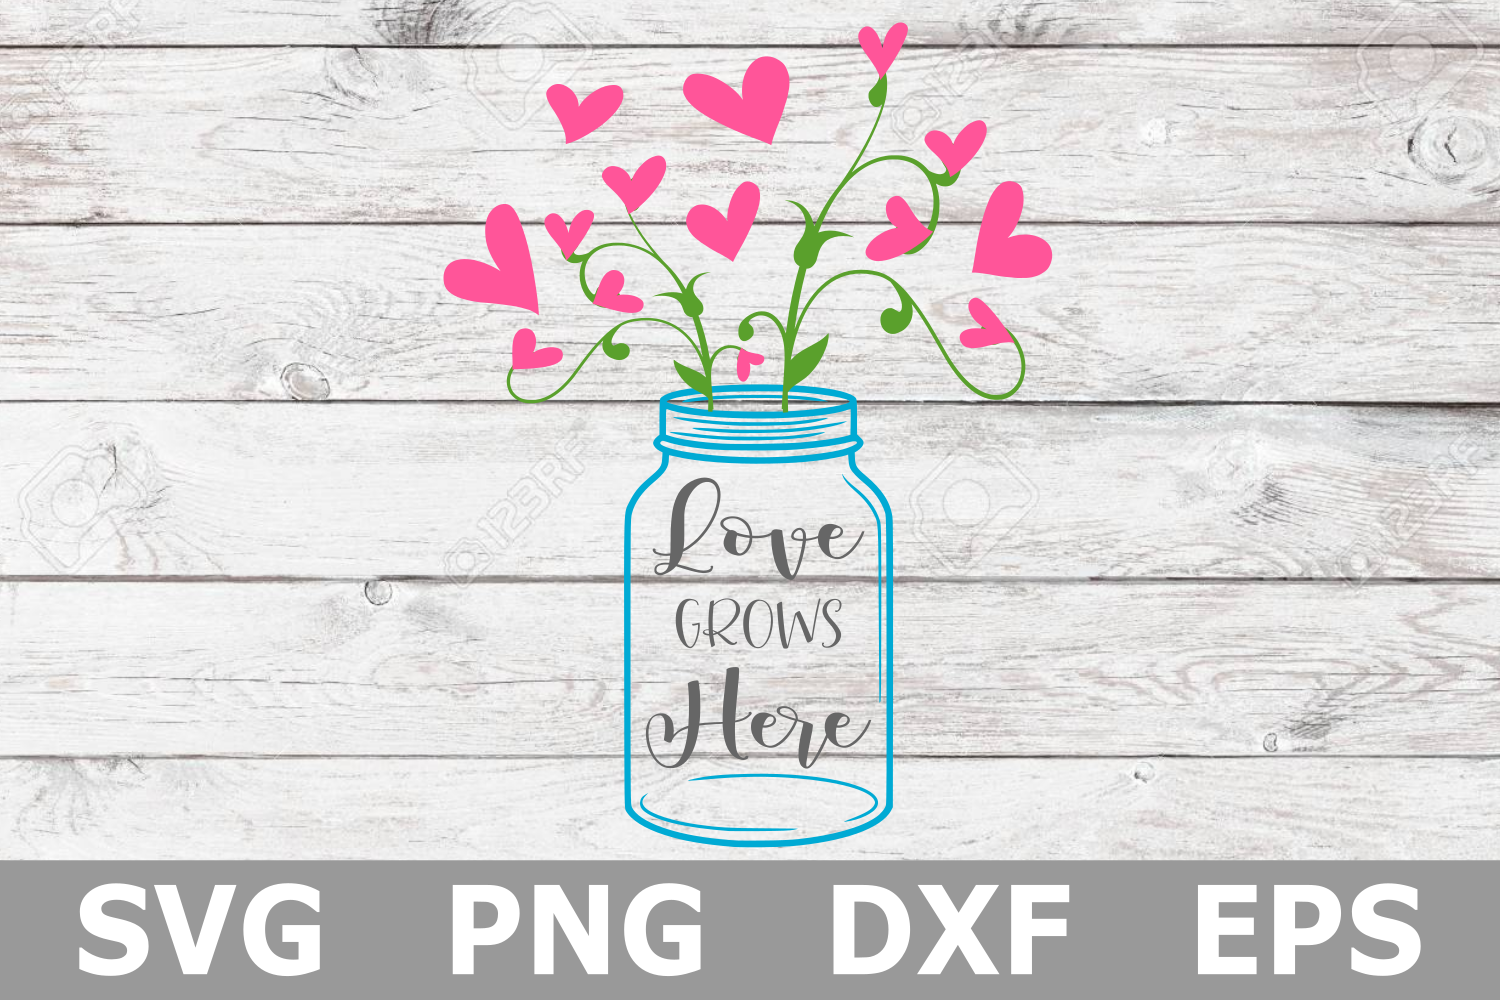 Love Grows Here - A Family SVG Cut File example image 2